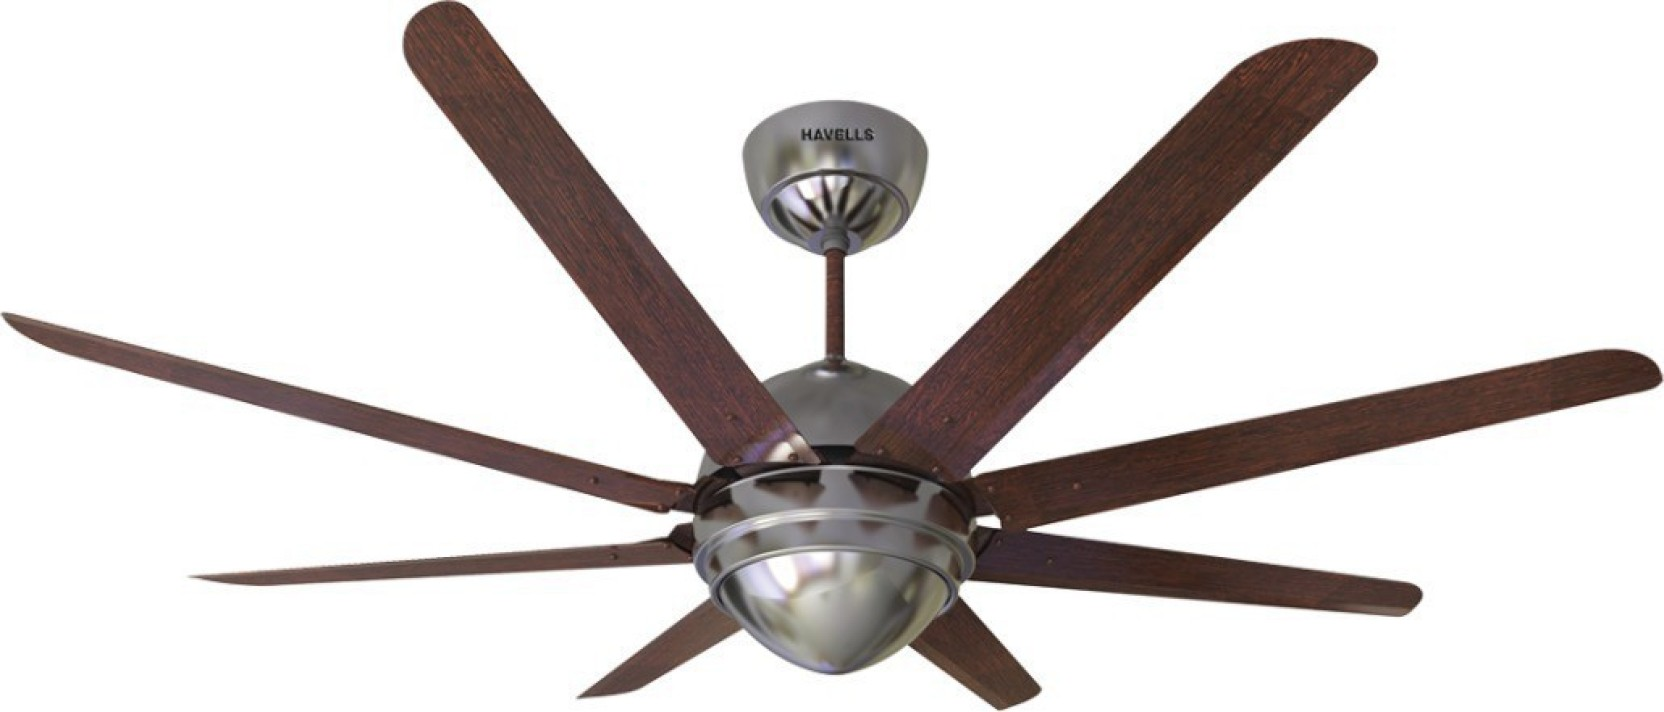 Havells Octet 8 Blade Ceiling Fan Add To Cart